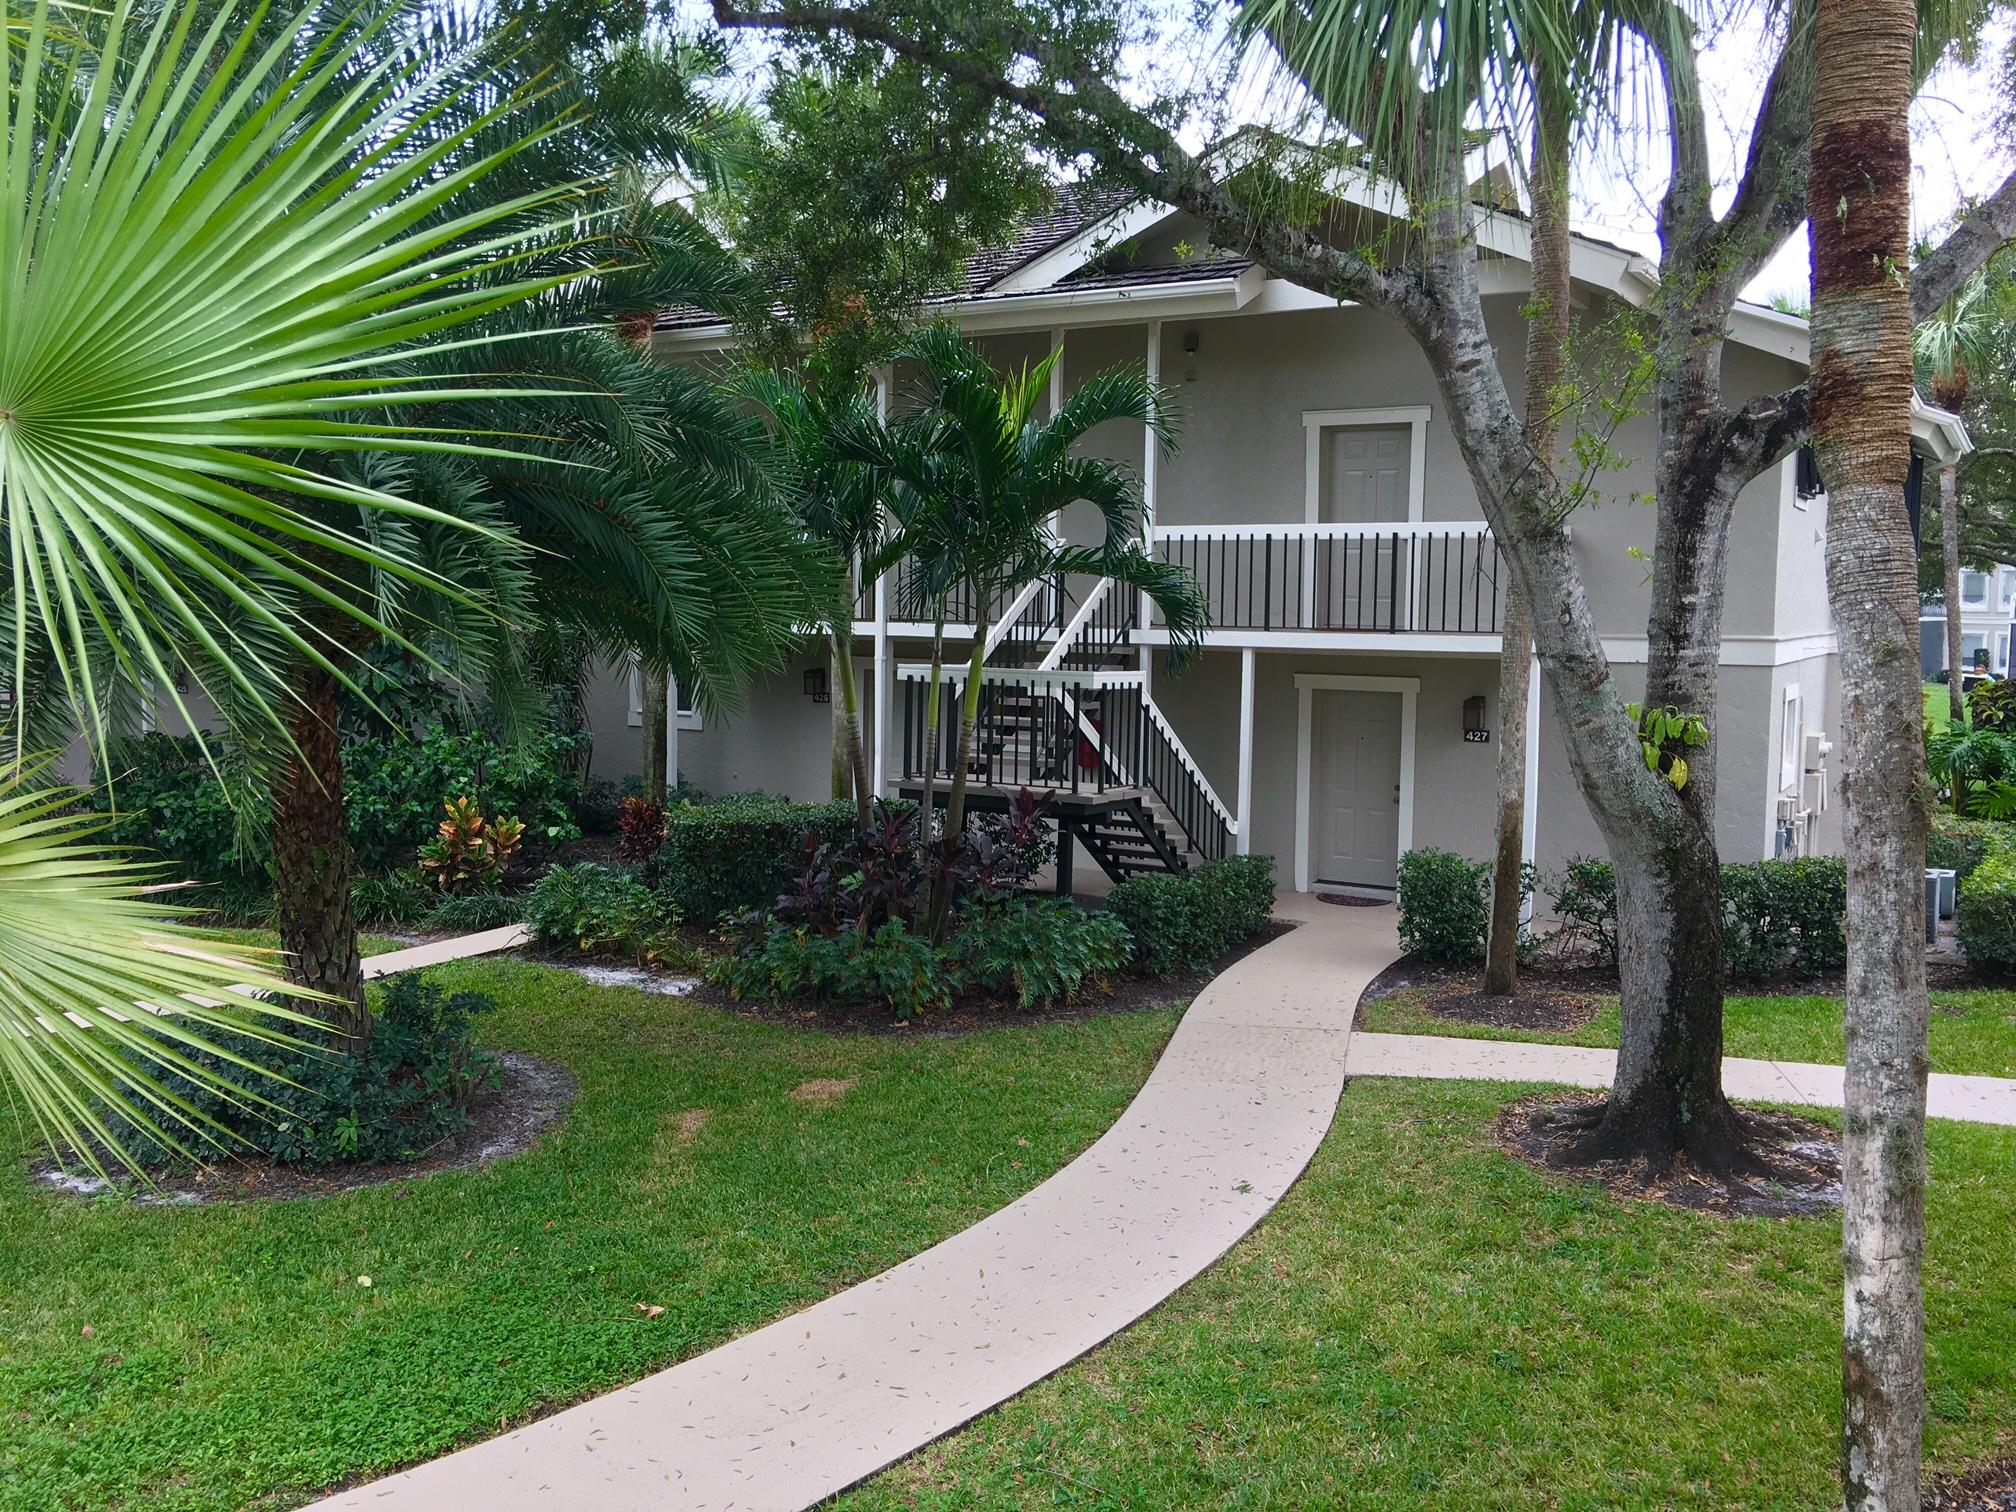 11863 Wimbledon Circle, Wellington, Florida 33414, 1 Bedroom Bedrooms, ,1 BathroomBathrooms,Condo/Coop,For Rent,Palm Beach Polo,Wimbledon,2,RX-10534401